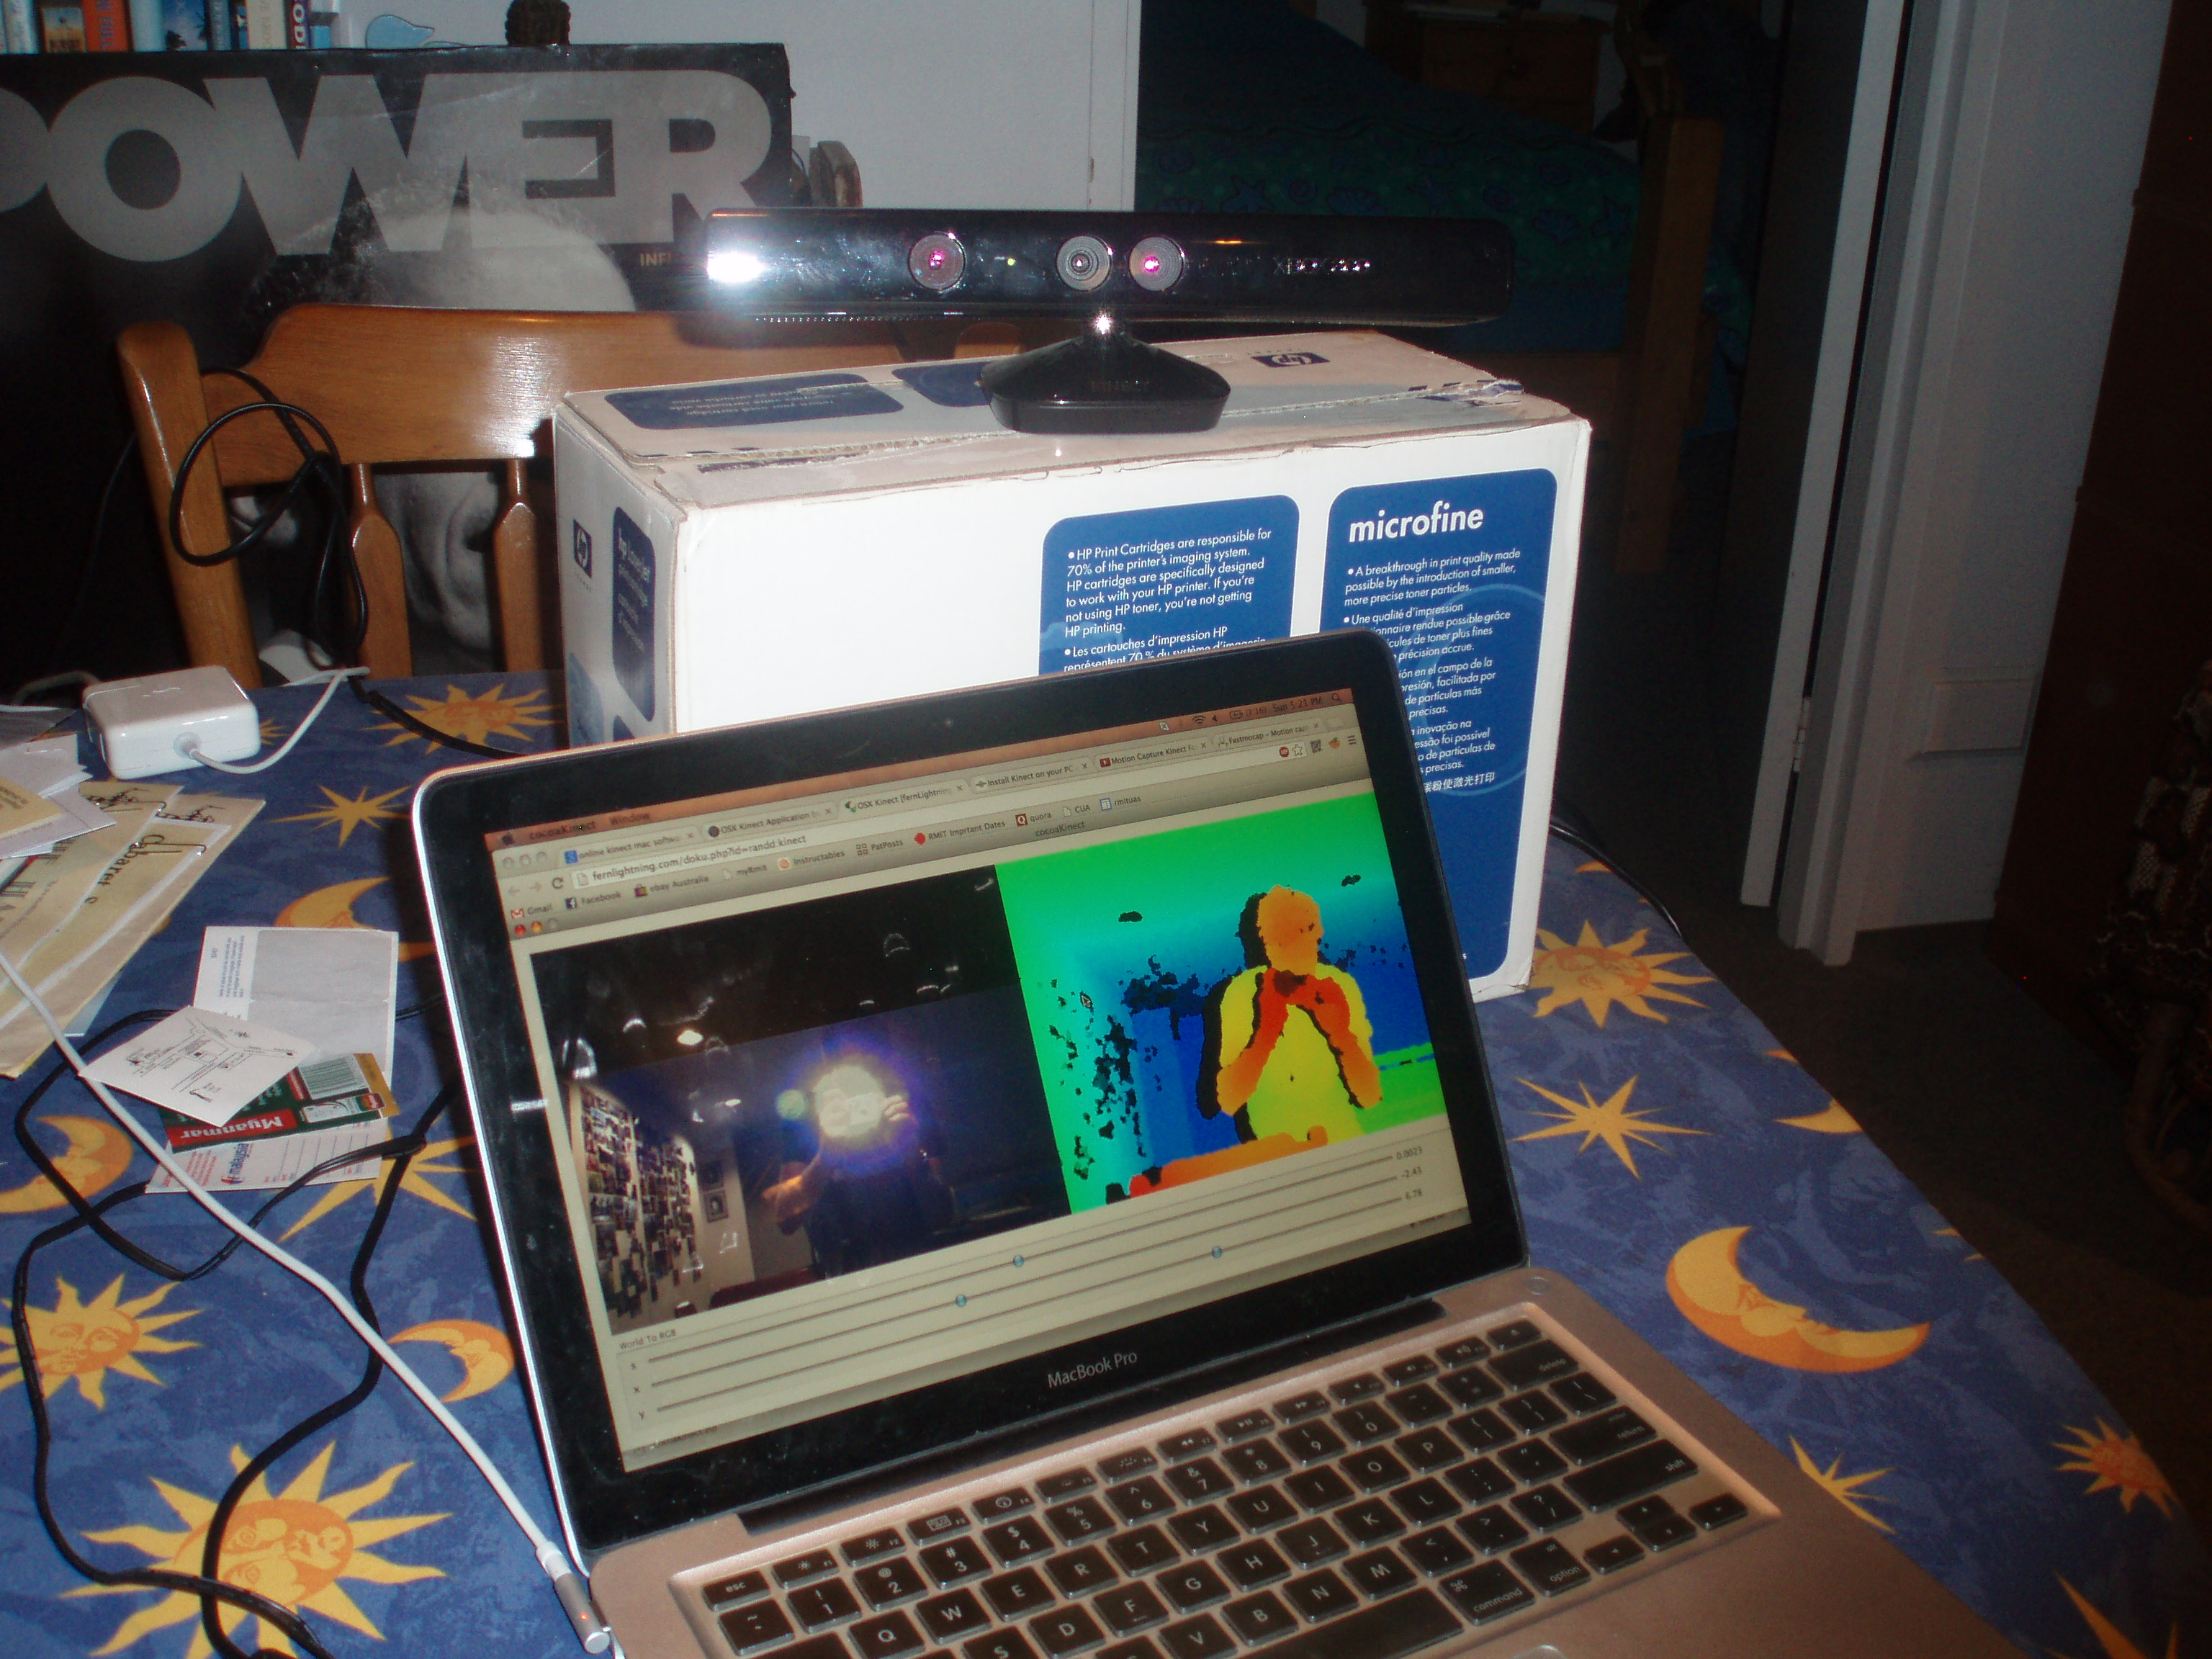 Wiring an xbox kinect for usb picture of wiring asfbconference2016 Image collections